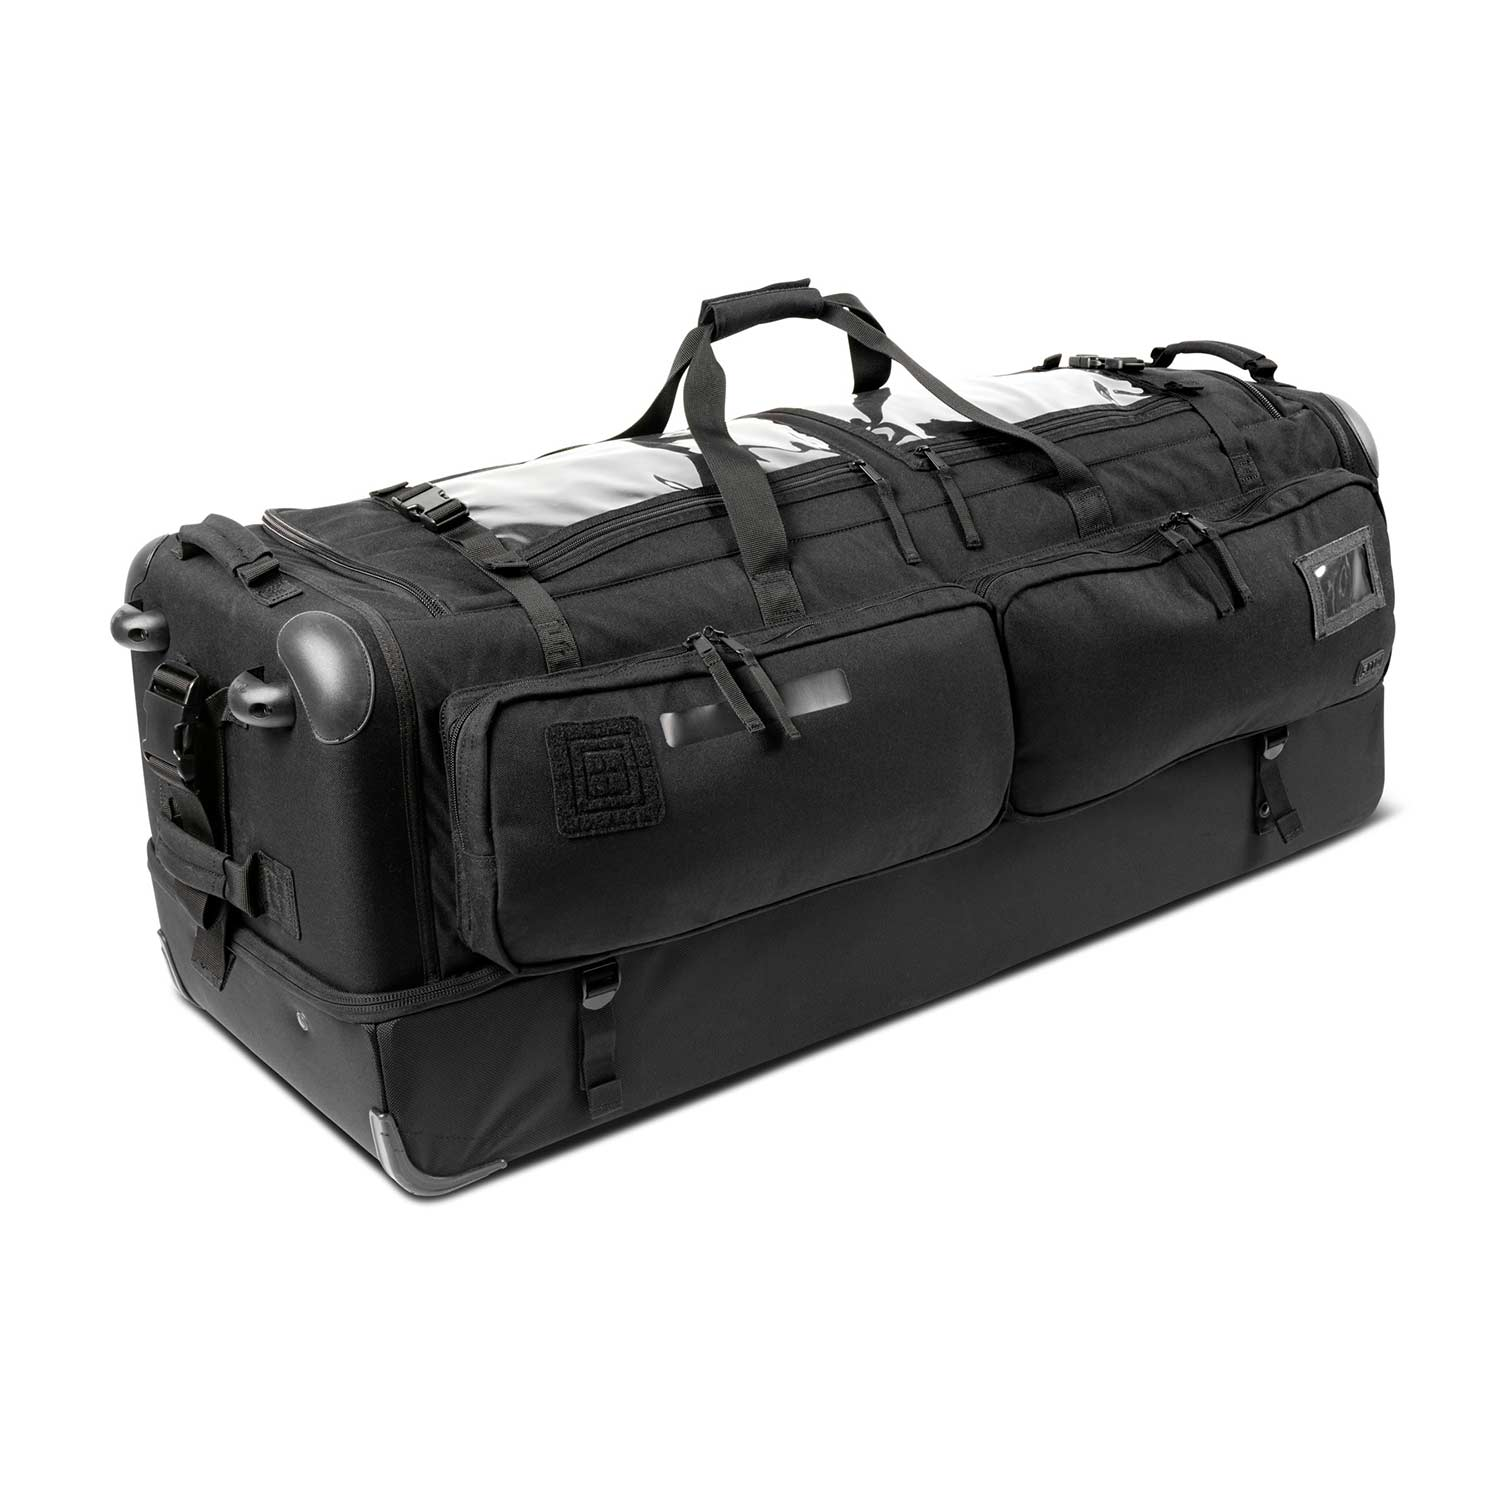 5.11 Tactical CAMS 3.0 Rolling Bag